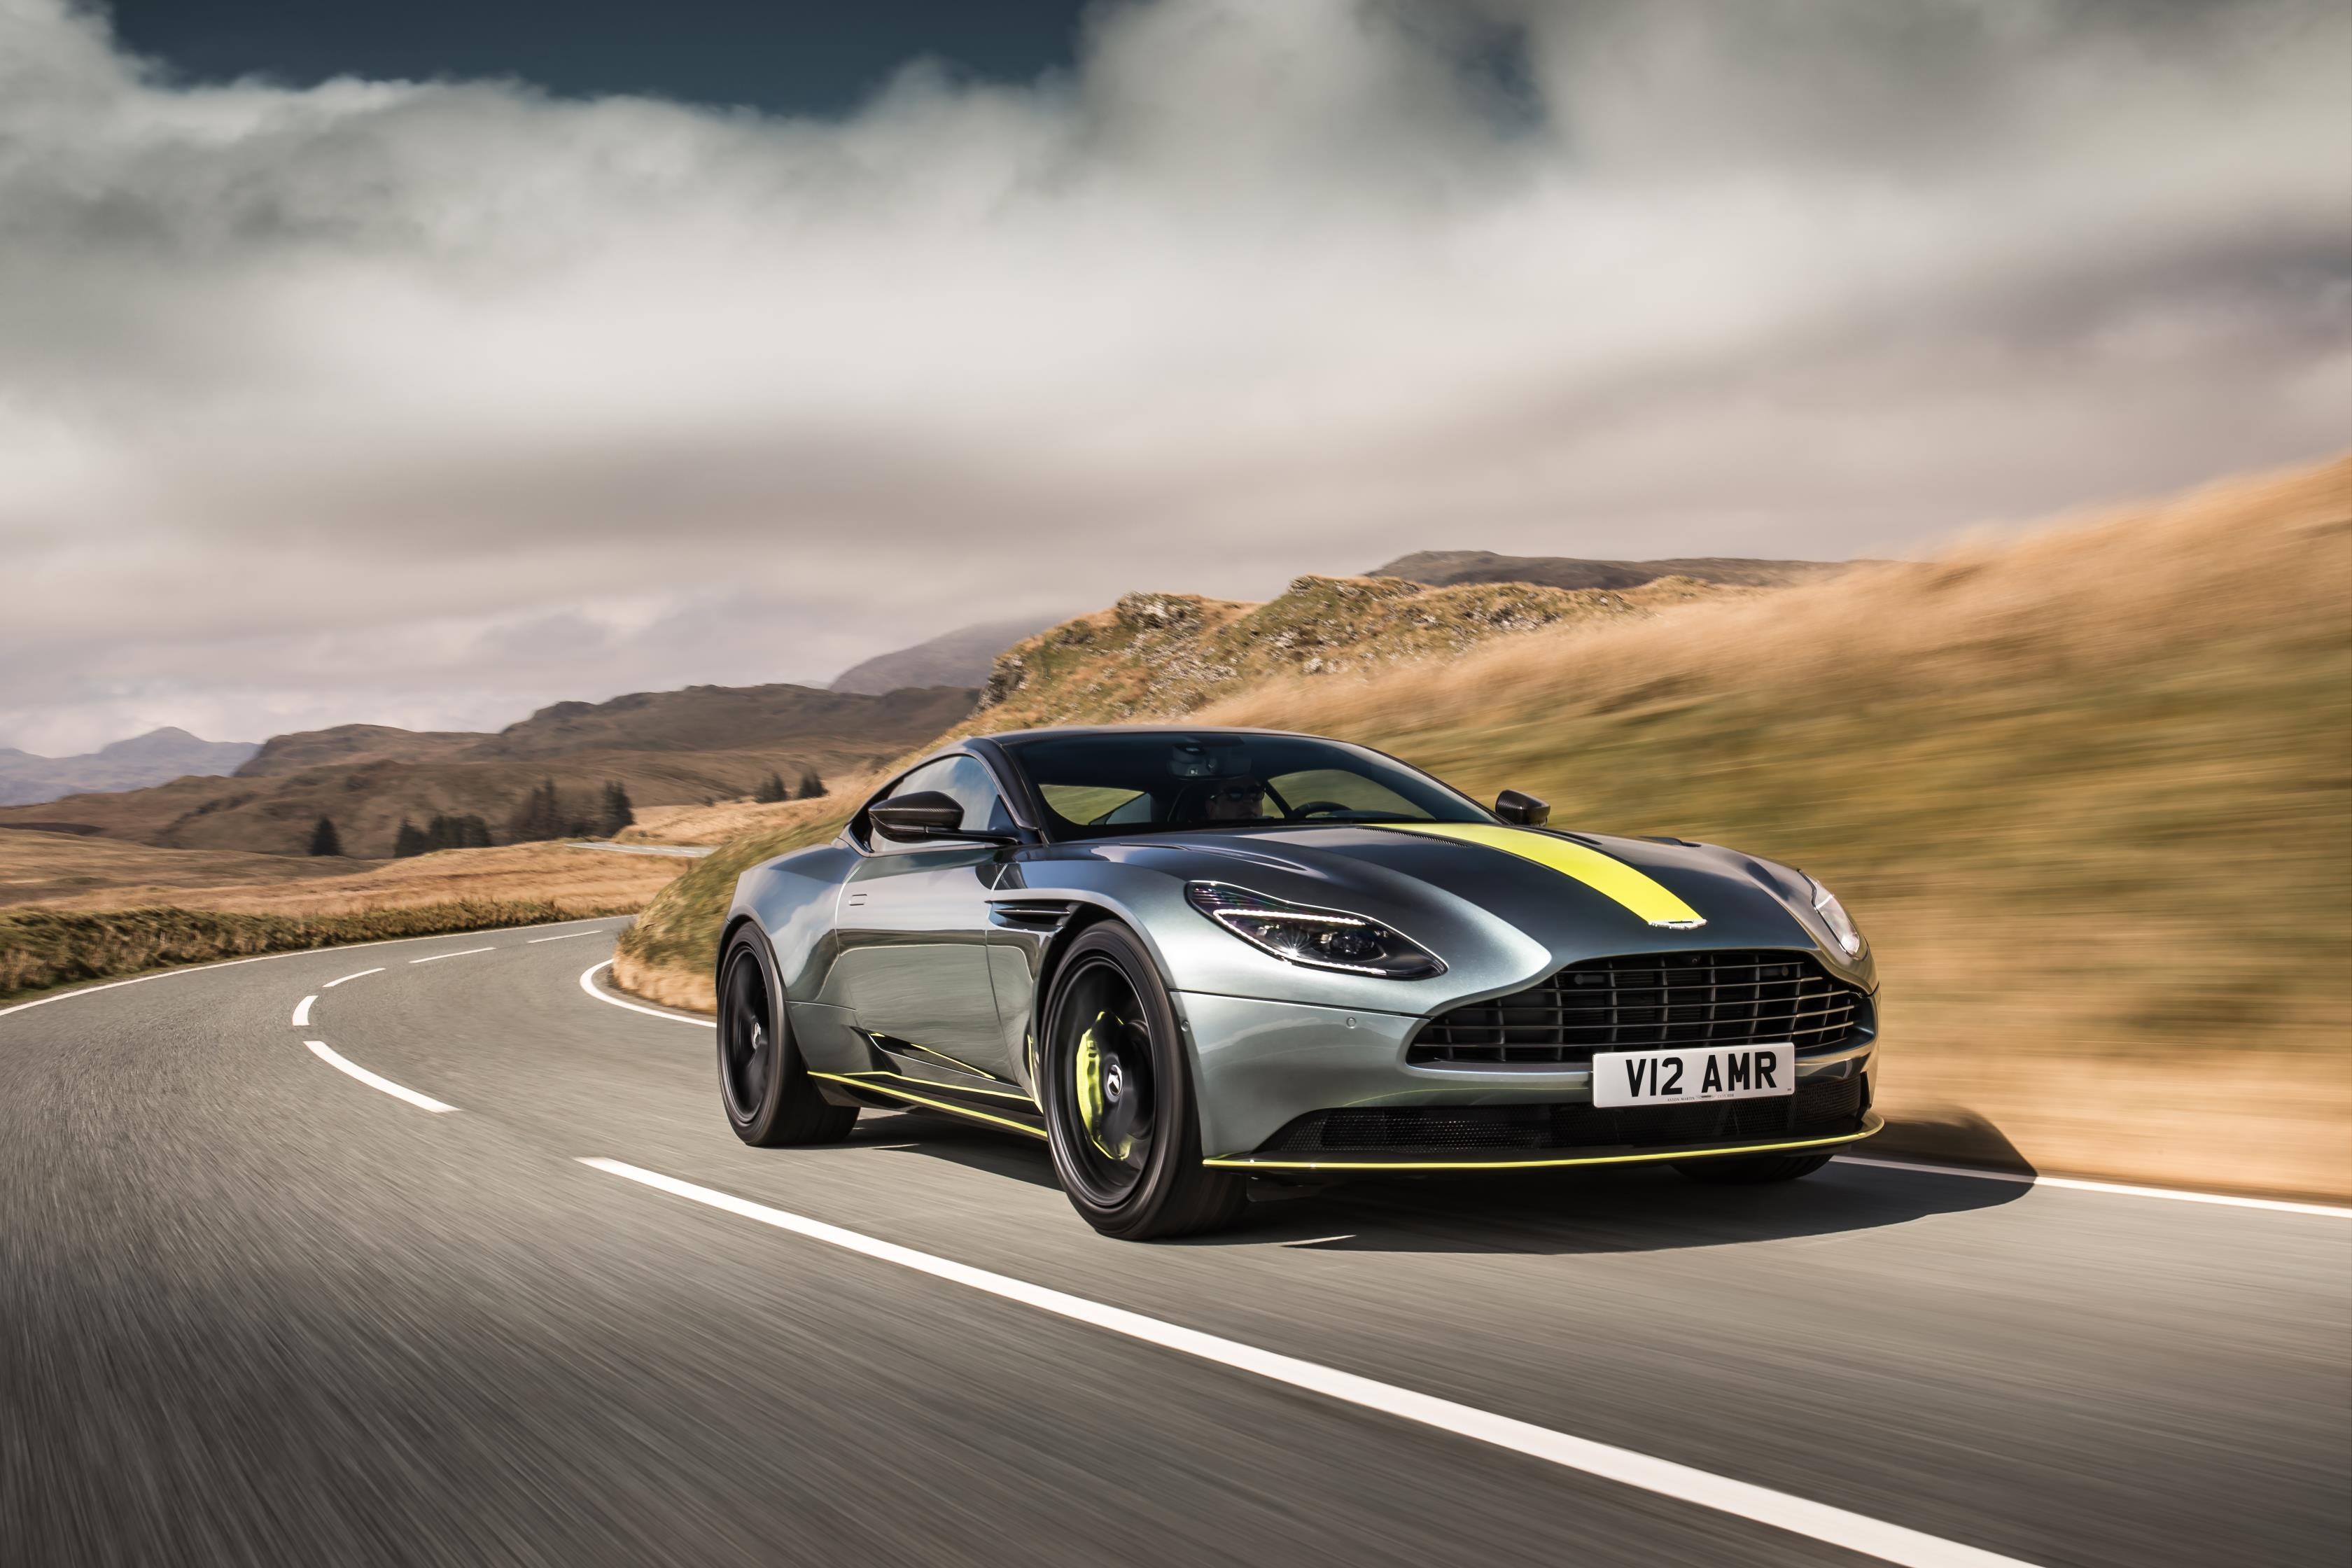 db11 amr officially debuts as the 630 hp aston martin - autoevolution